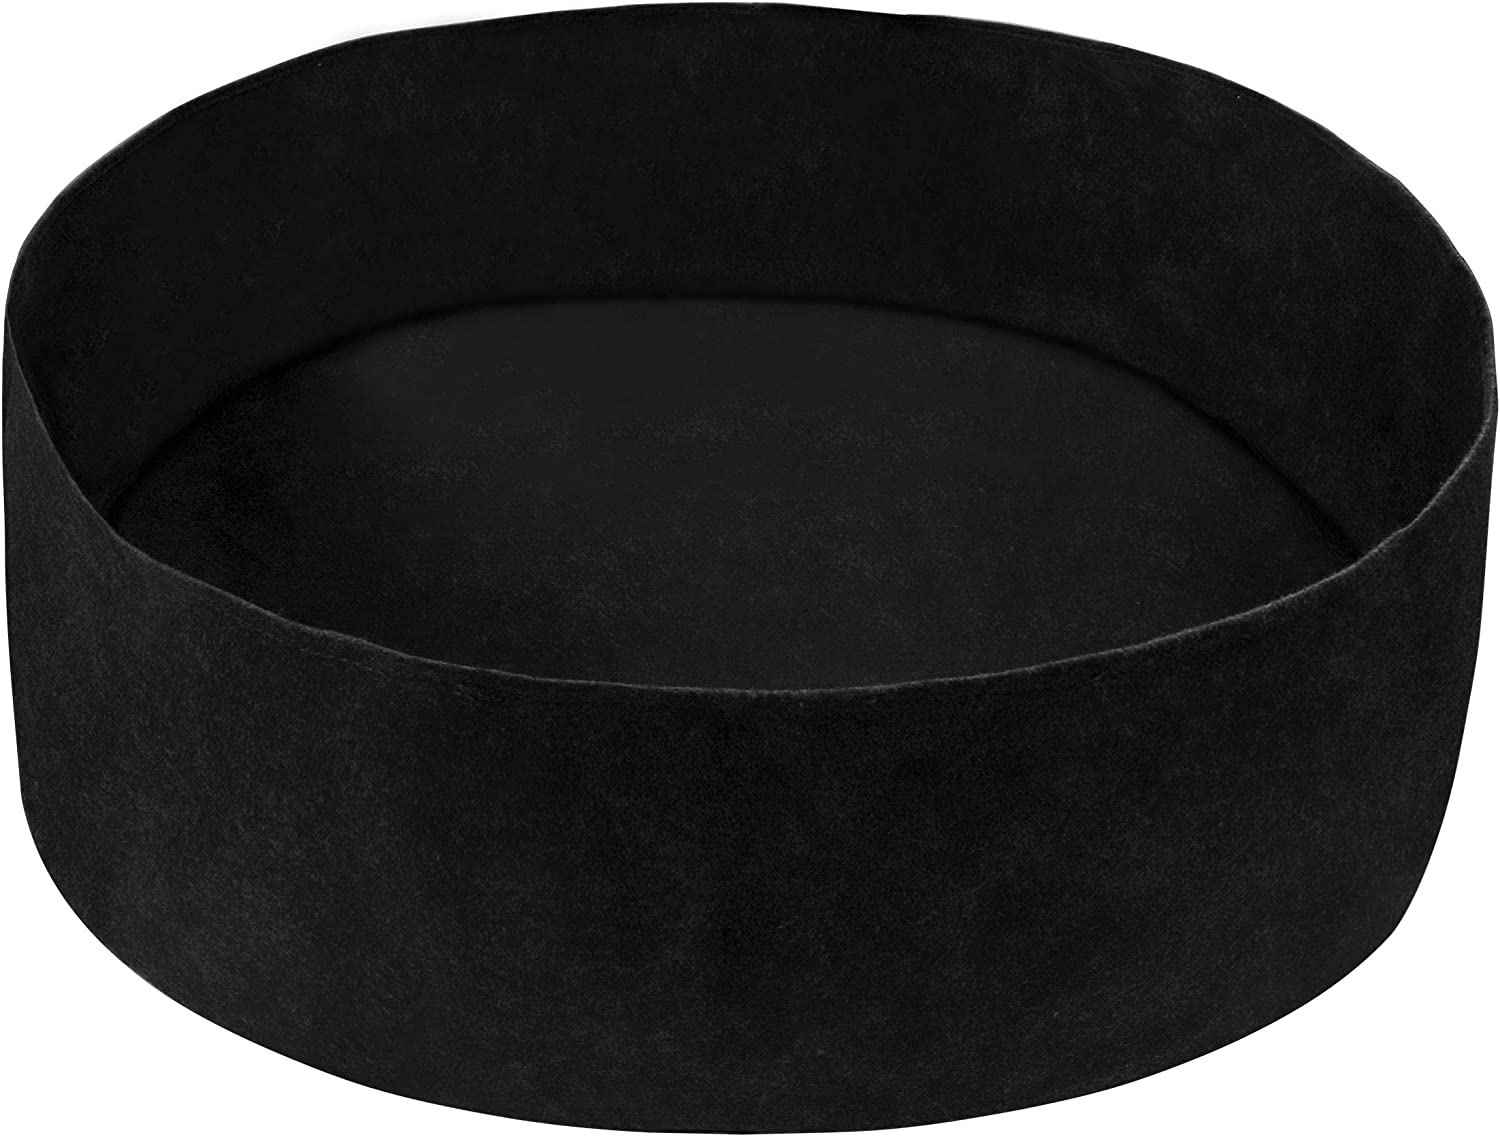 Round Garden Grow Bag Pots Bed,Planting Box Breathable Container at Outdoor Indoor for Herb Flower Vegetable.Black 15 Gallon